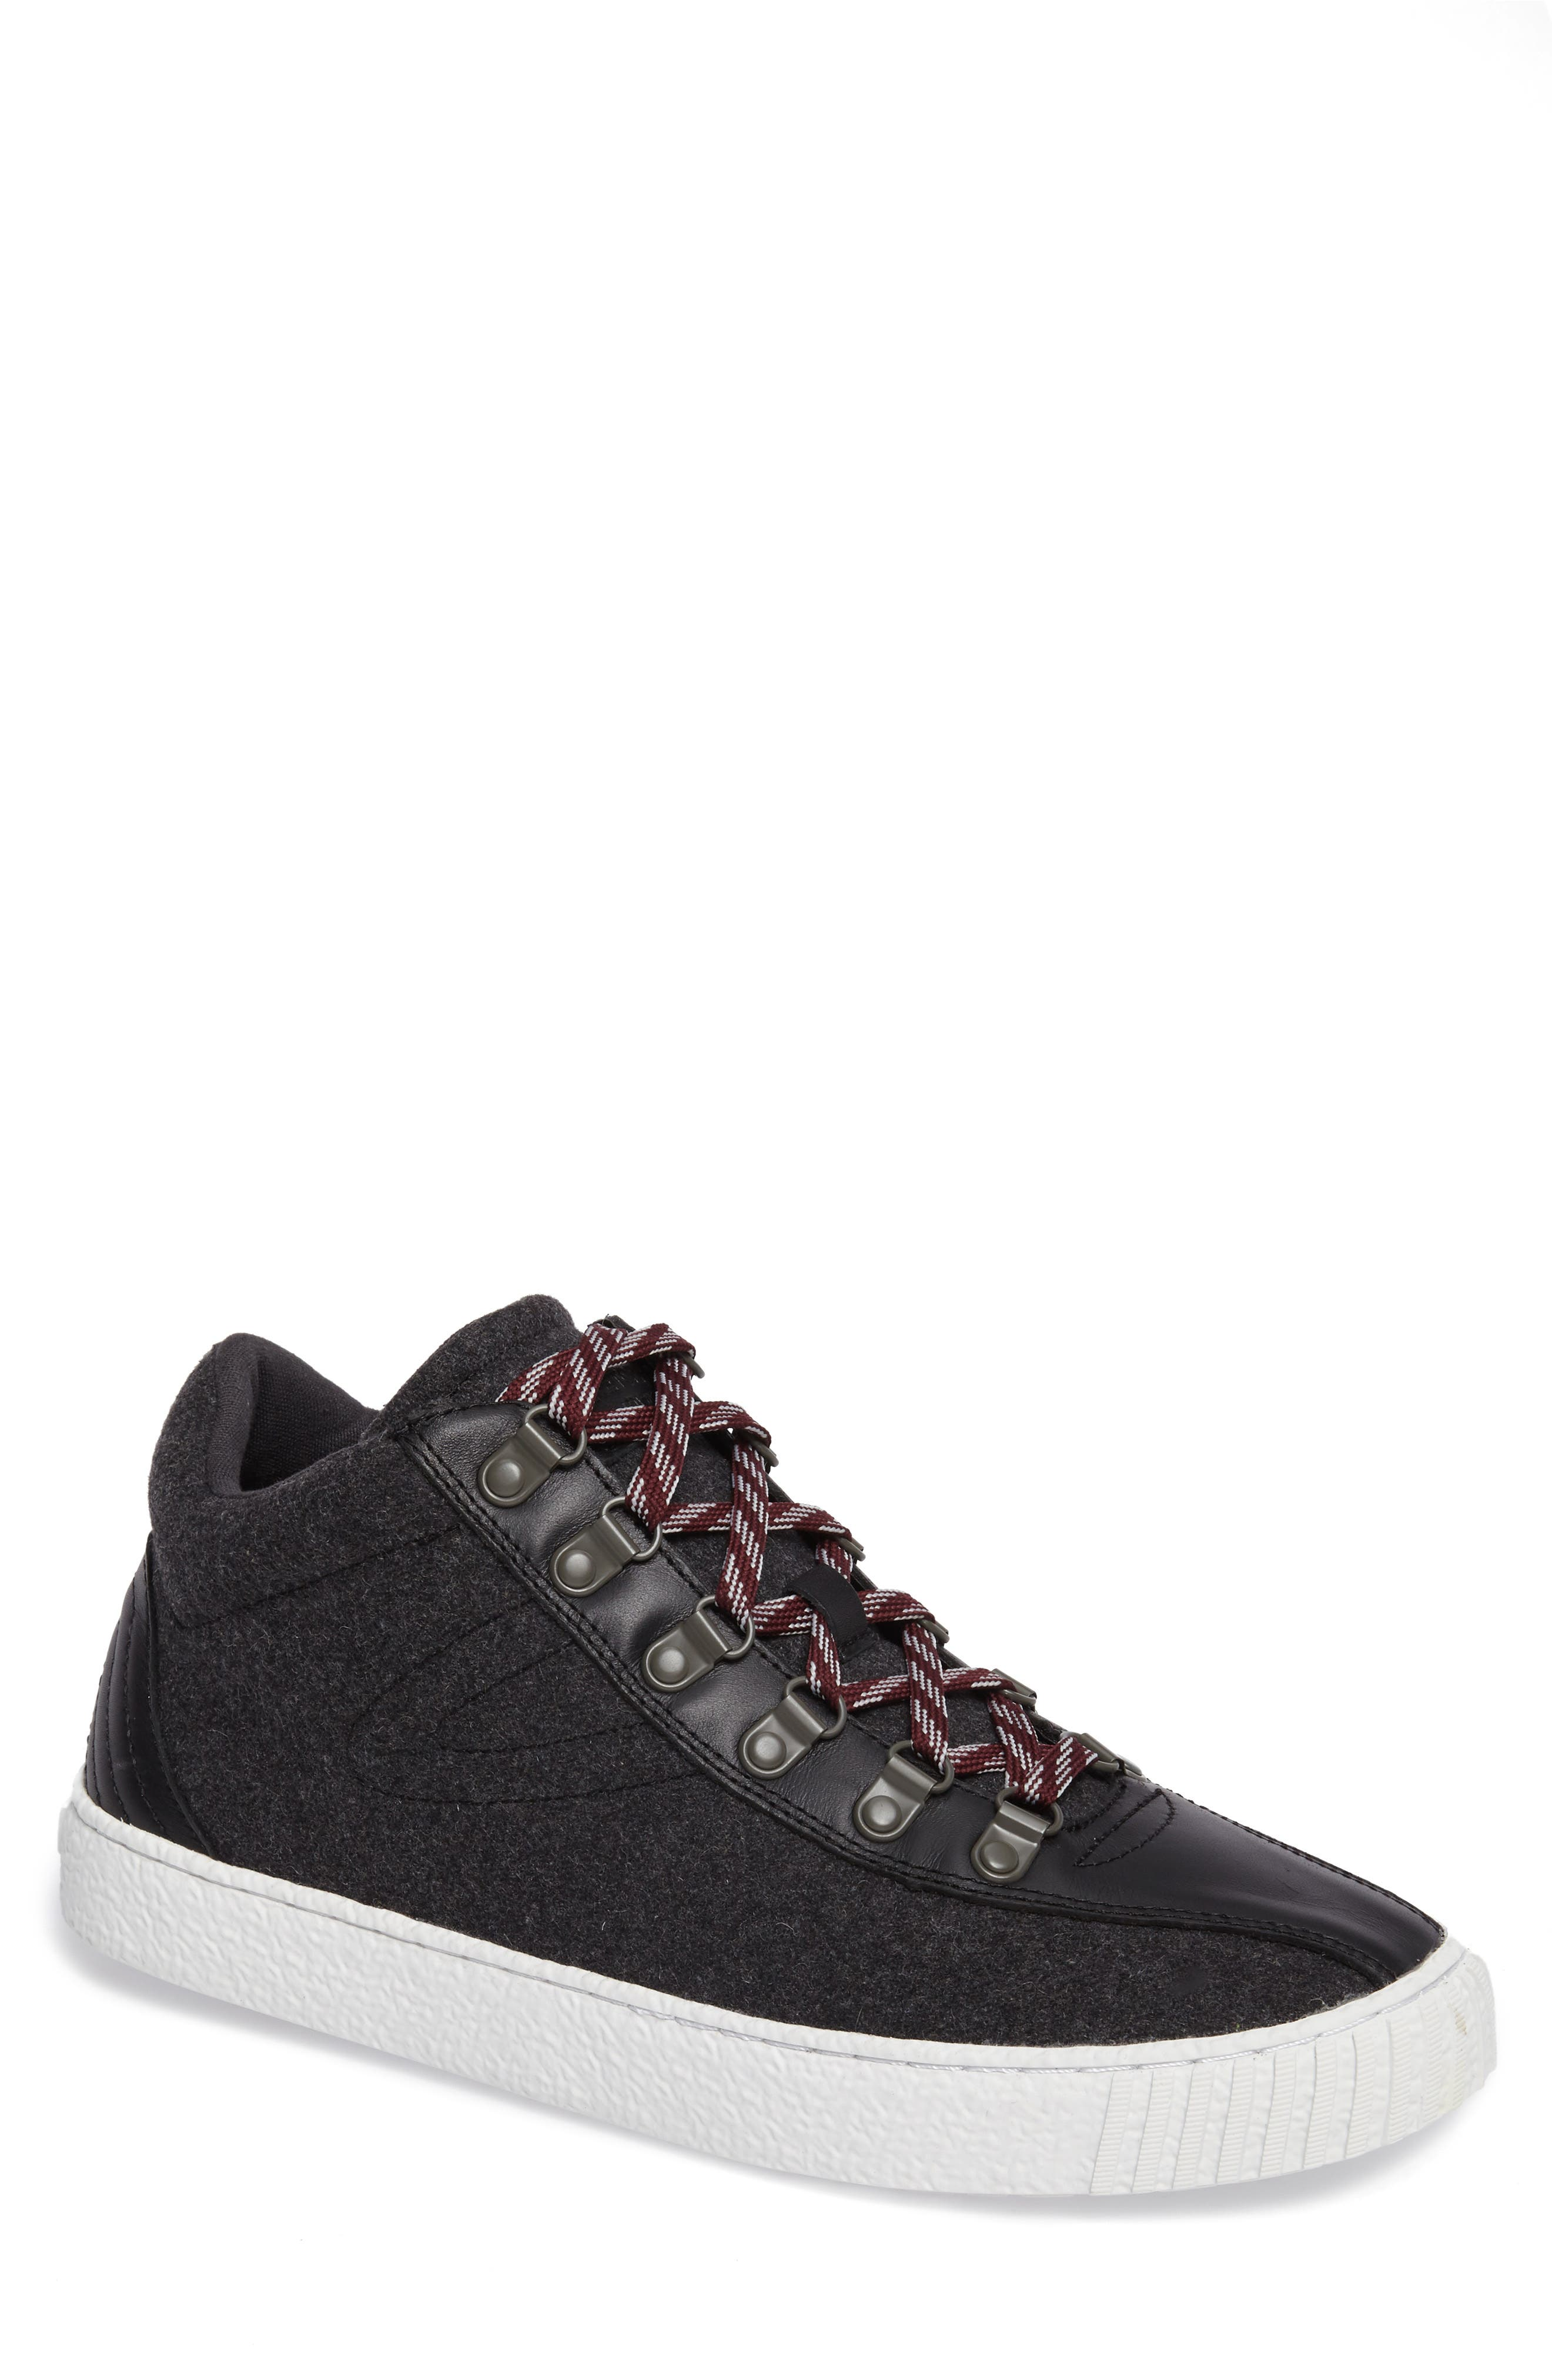 dbbba1c3e85 Tretorn - Men s Casual Fashion Shoes and Sneakers